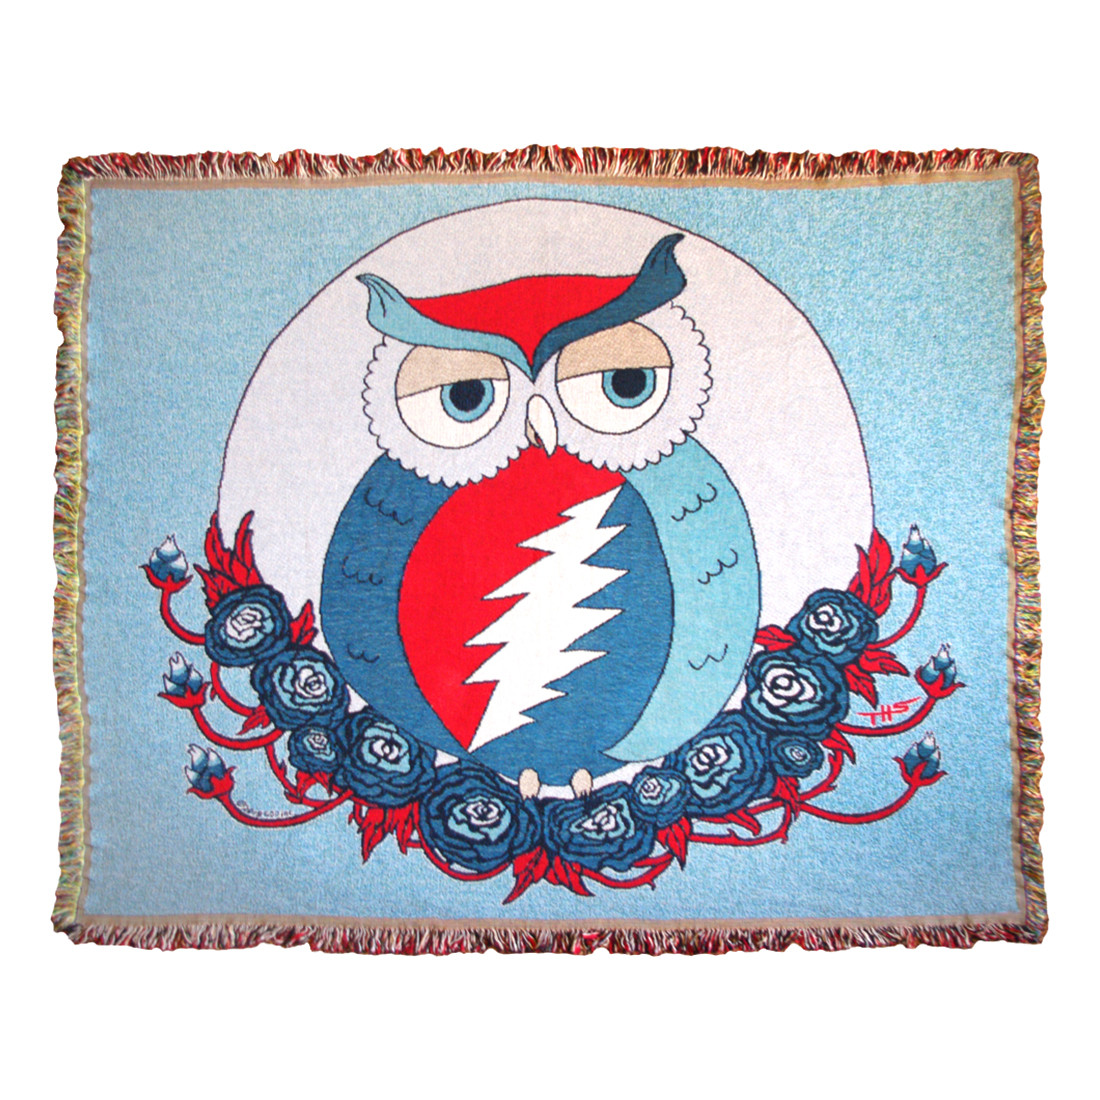 GD Steal Owl Woven Blanket